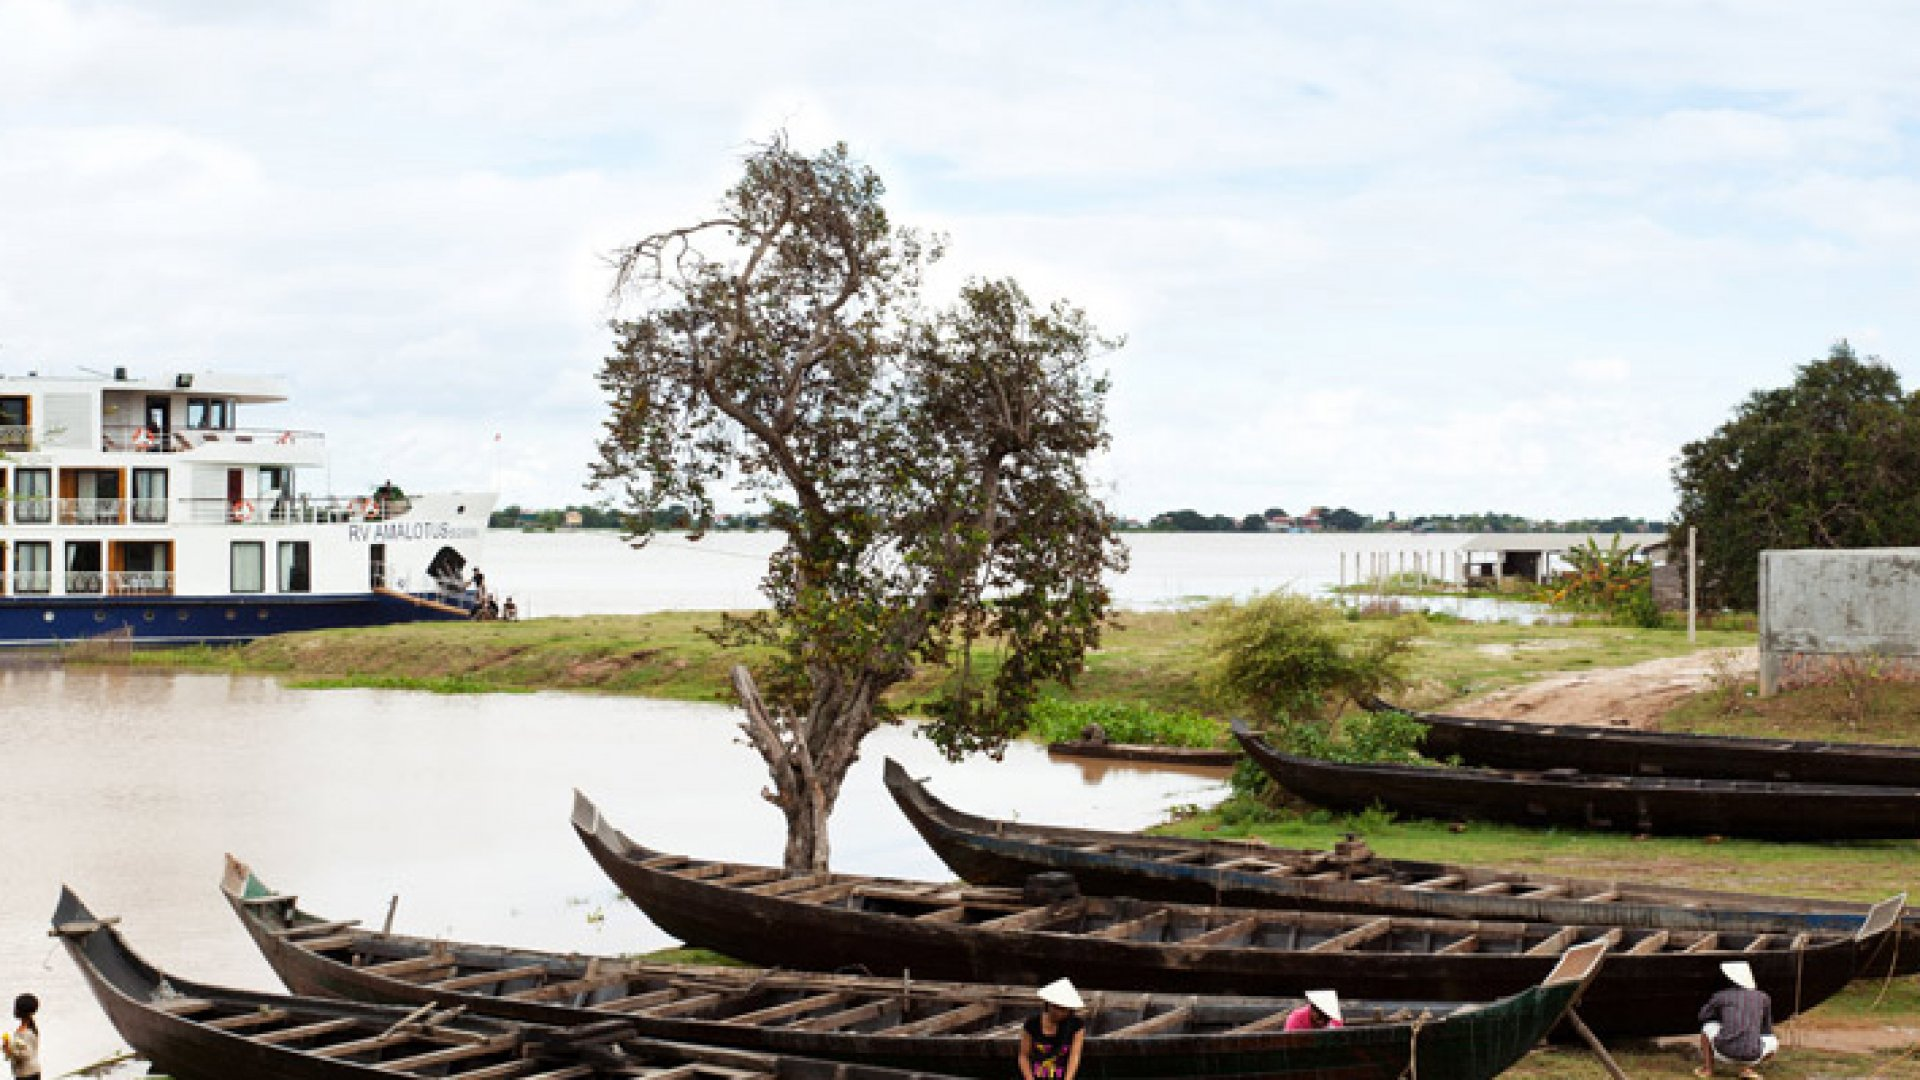 The Amalotus ship which travels on the Mekong River through Cambodia and Vietnam.